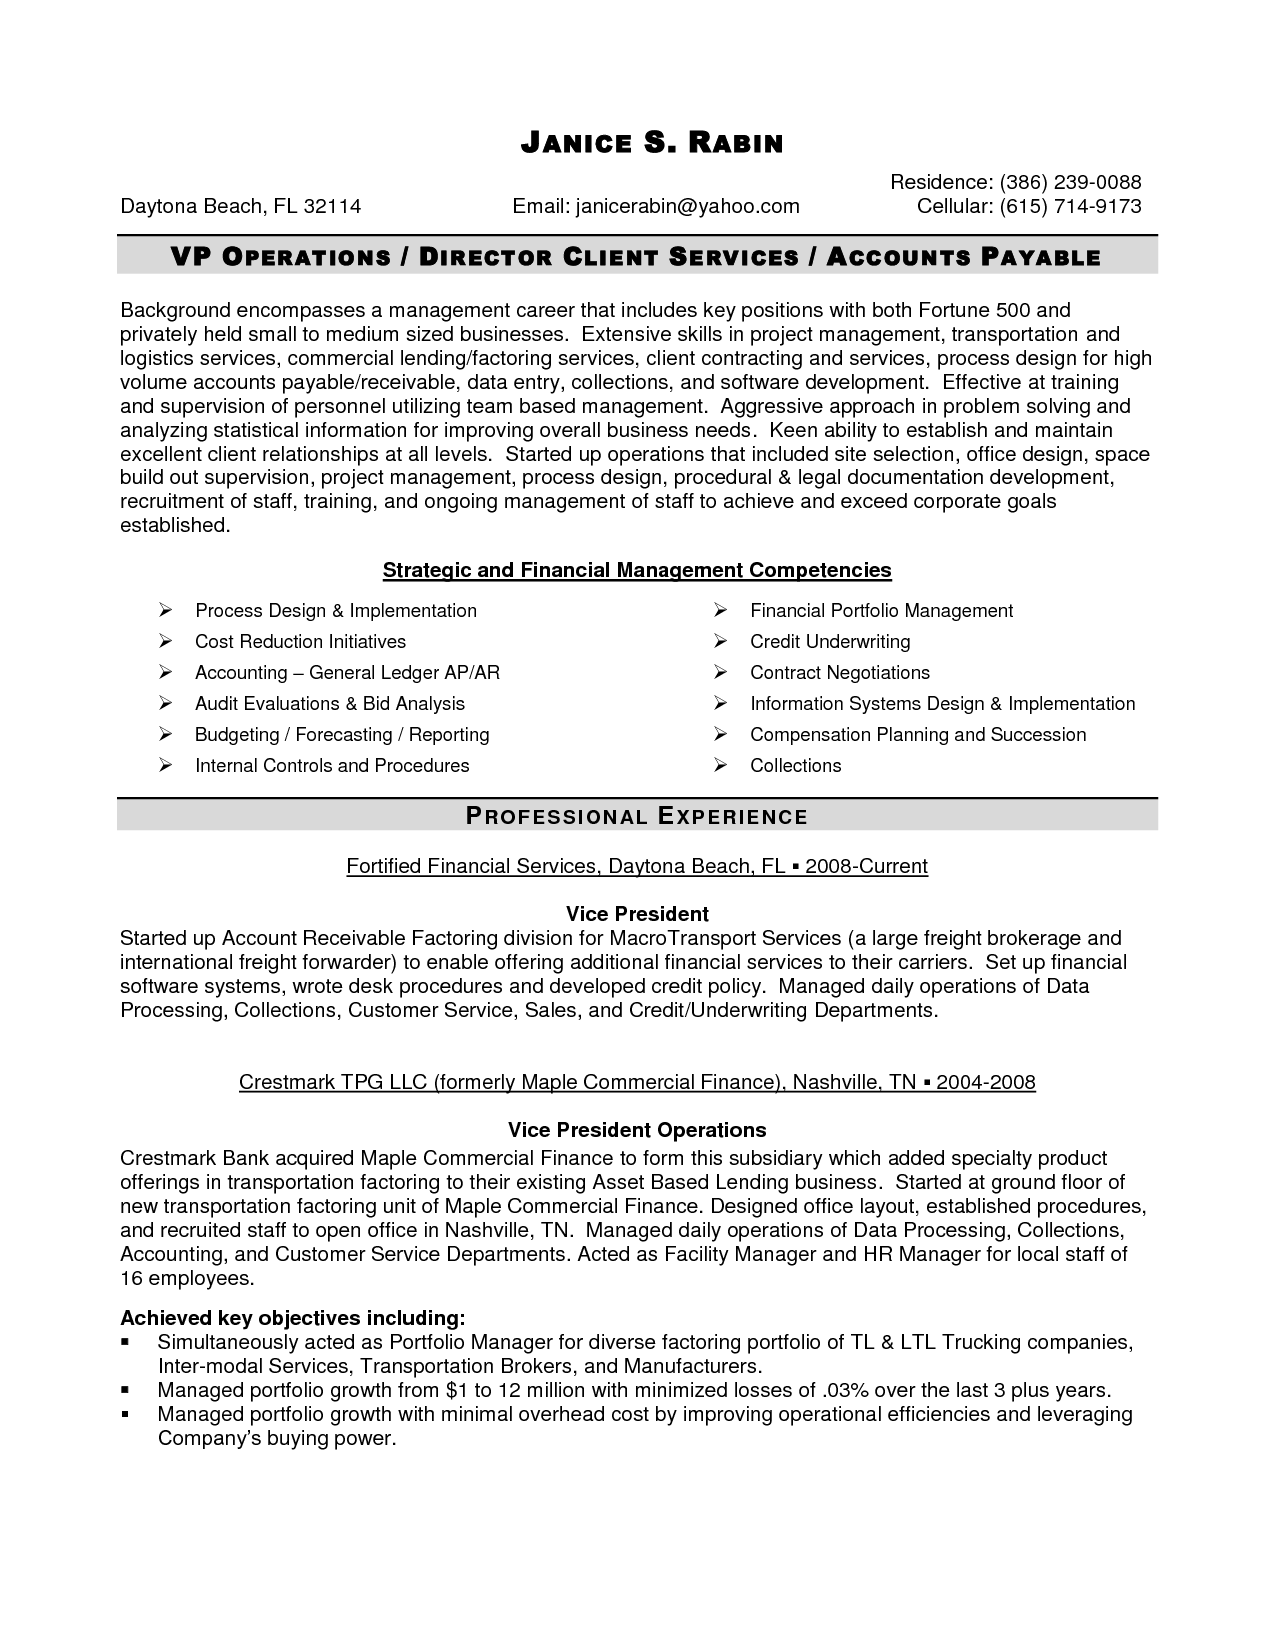 Sample Logistics Manager Resume 10 Best Best Warehouse Resume Templates U0026  Samples Images On .  Director Level Resume